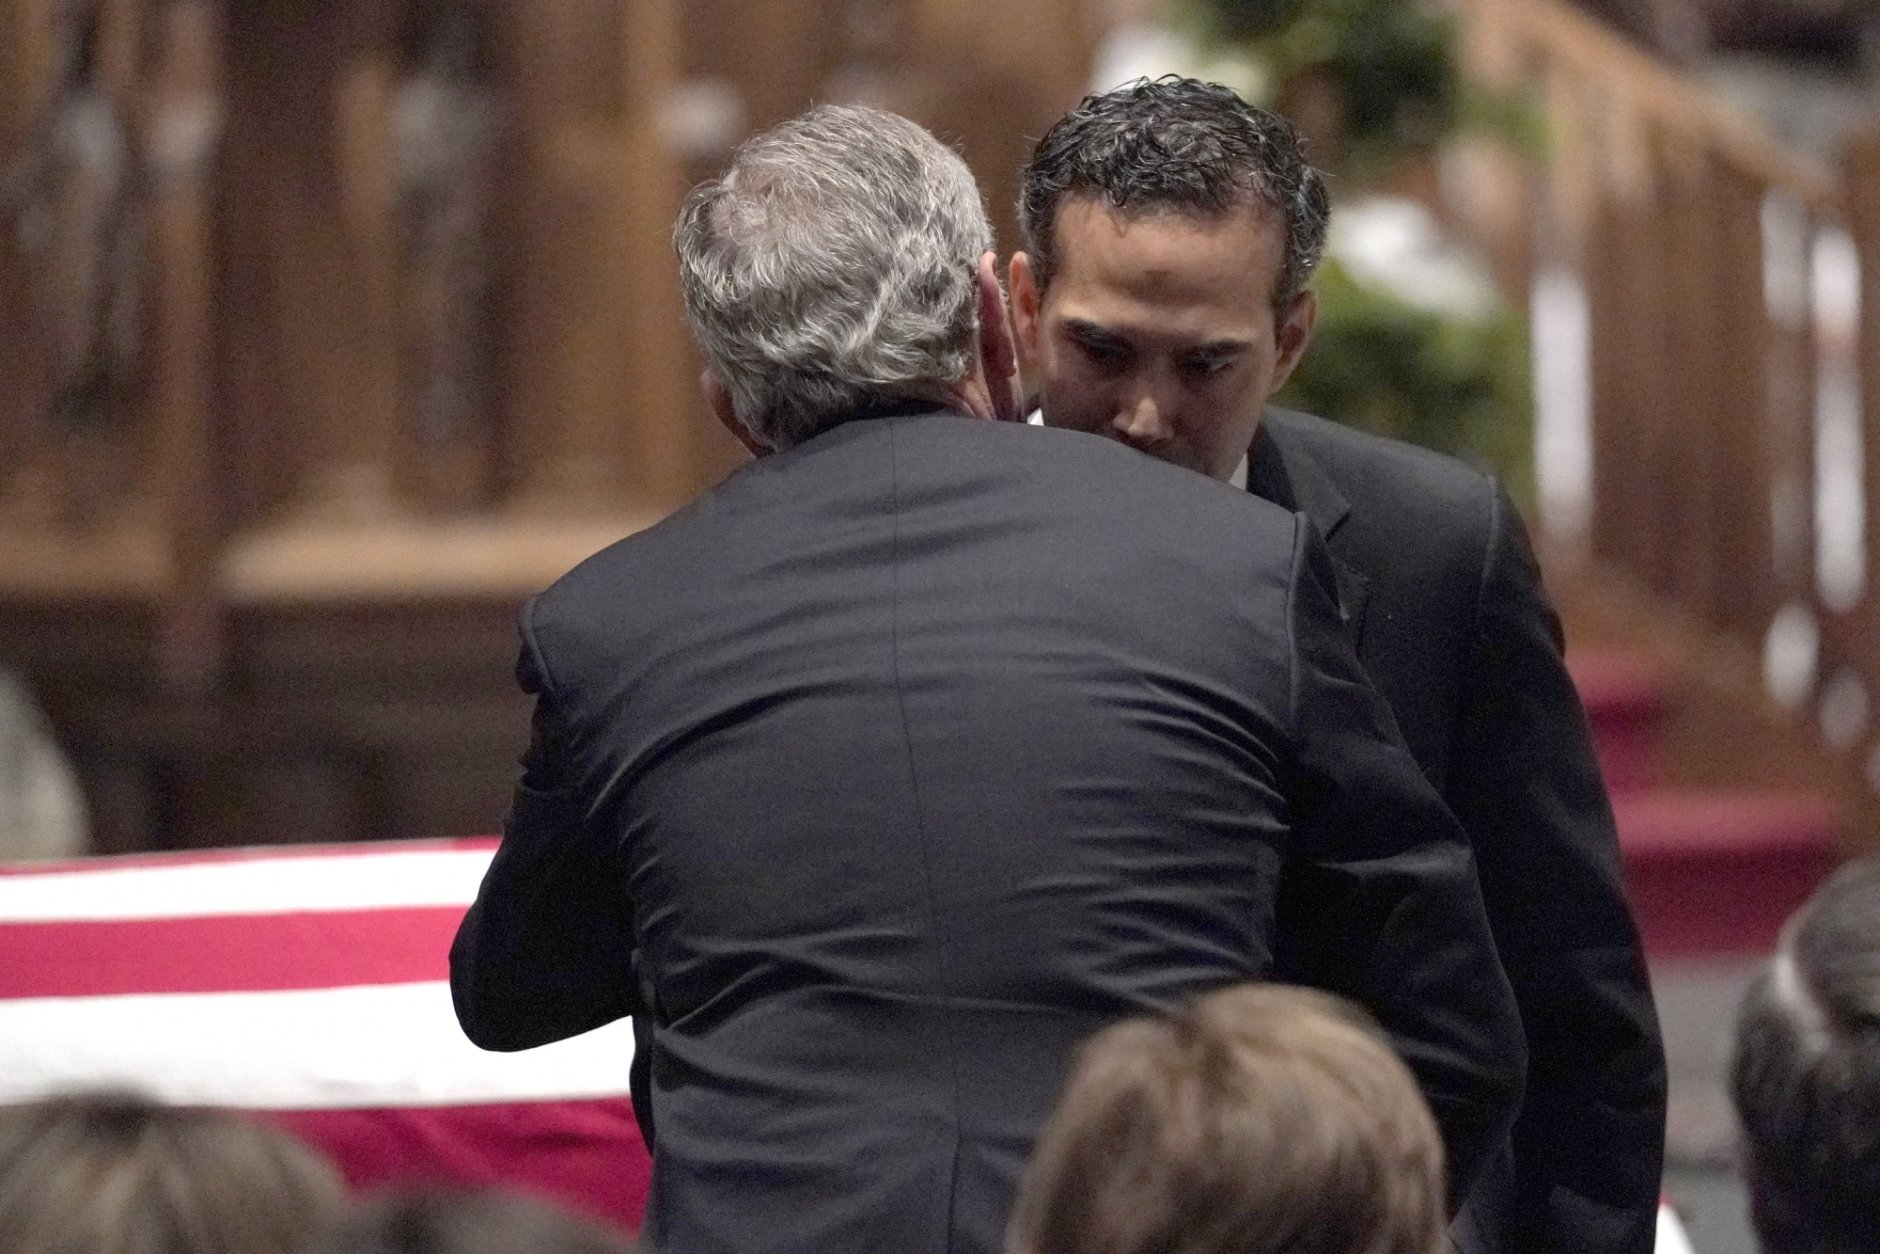 George P. Bush embraces former President George W. Bush after giving a eulogy for former President George H.W. Bush during a funeral service at St. Martin's Episcopal Church, Thursday, Dec. 6, 2018, in Houston. (AP Photo/David J. Phillip, Pool)